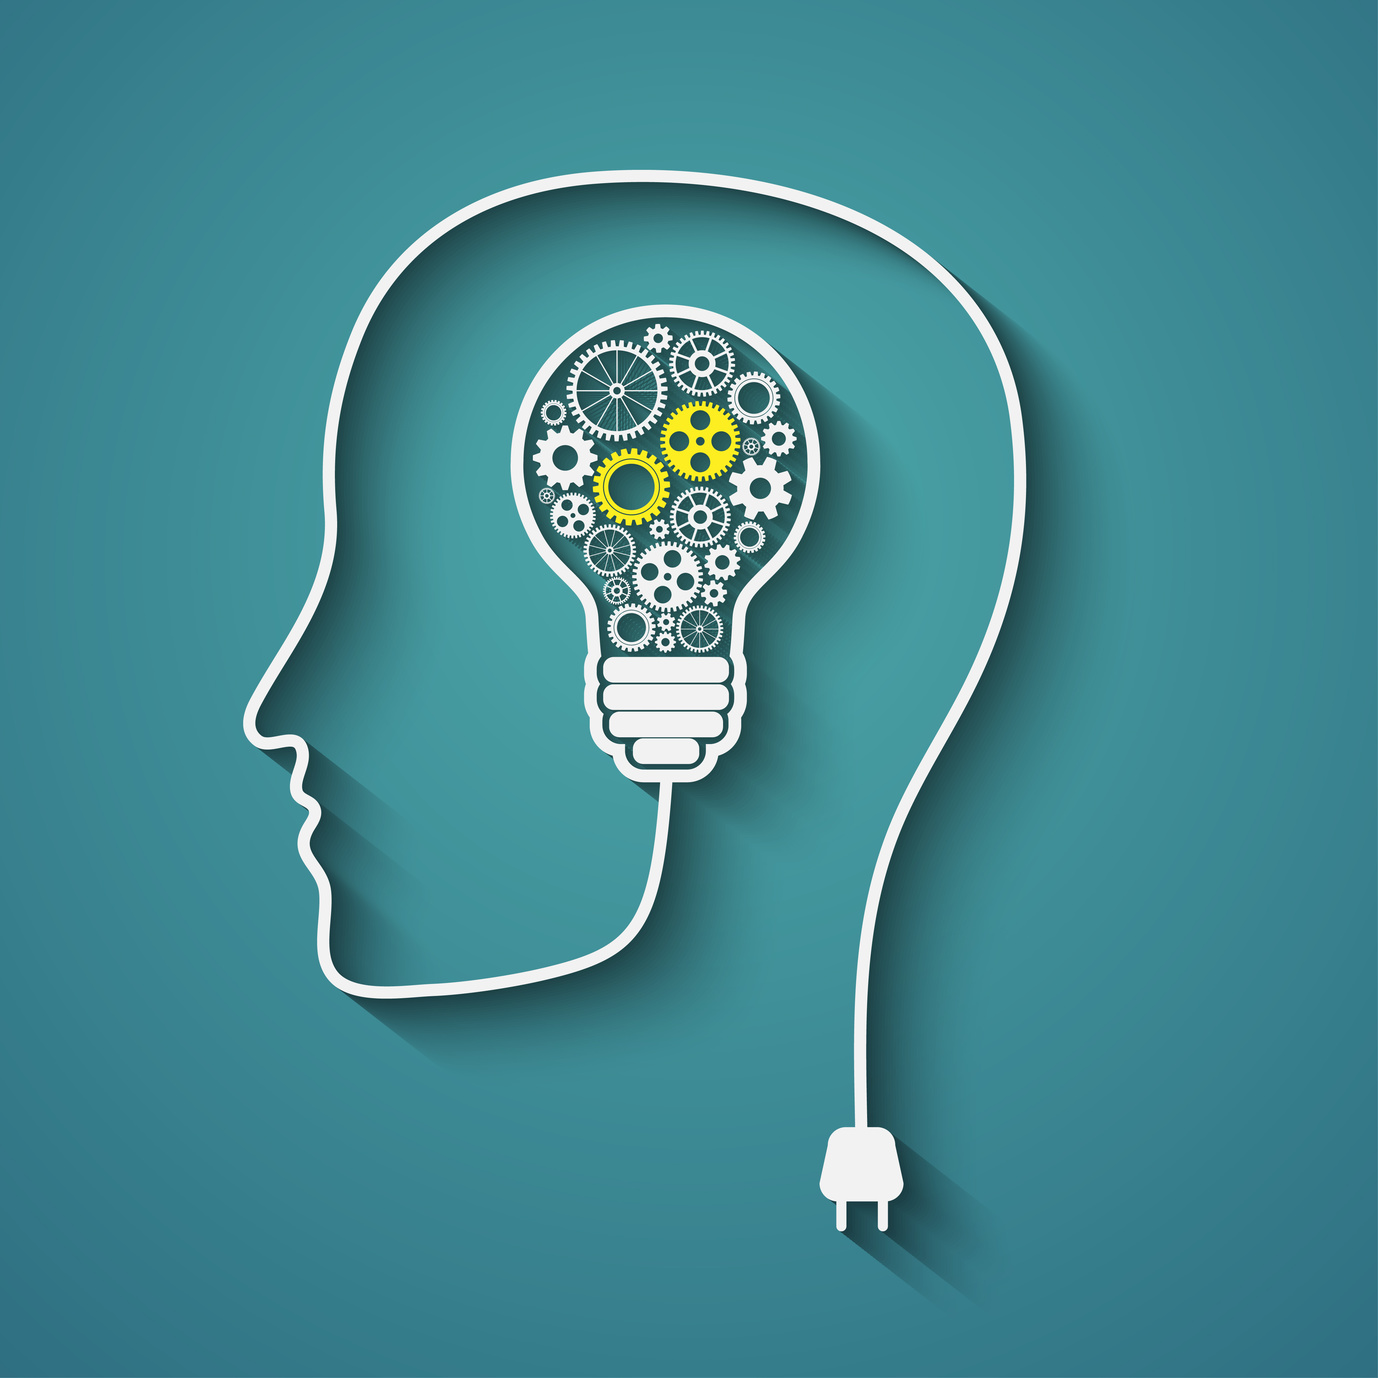 A lightbulb full of cogs to represent thinking and a power lead in the shape of a head